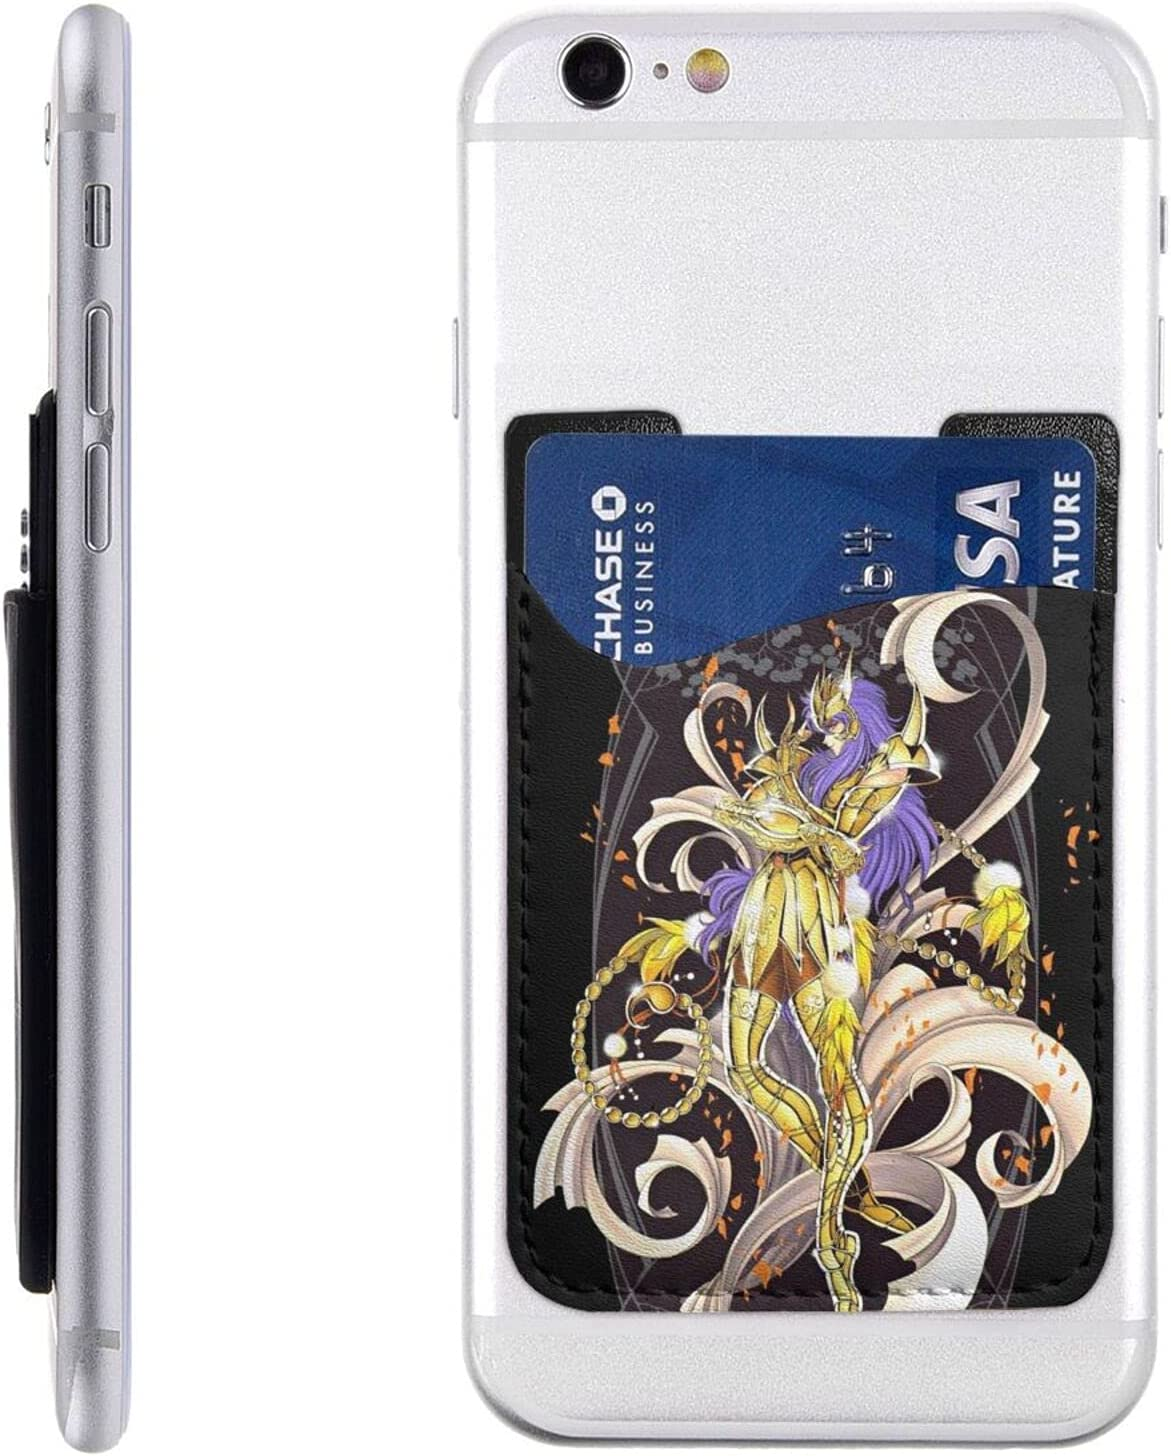 40% OFF Cheap Sale Mobile Phone Card Holder Adhesive Walle Cell Award-winning store On Stick